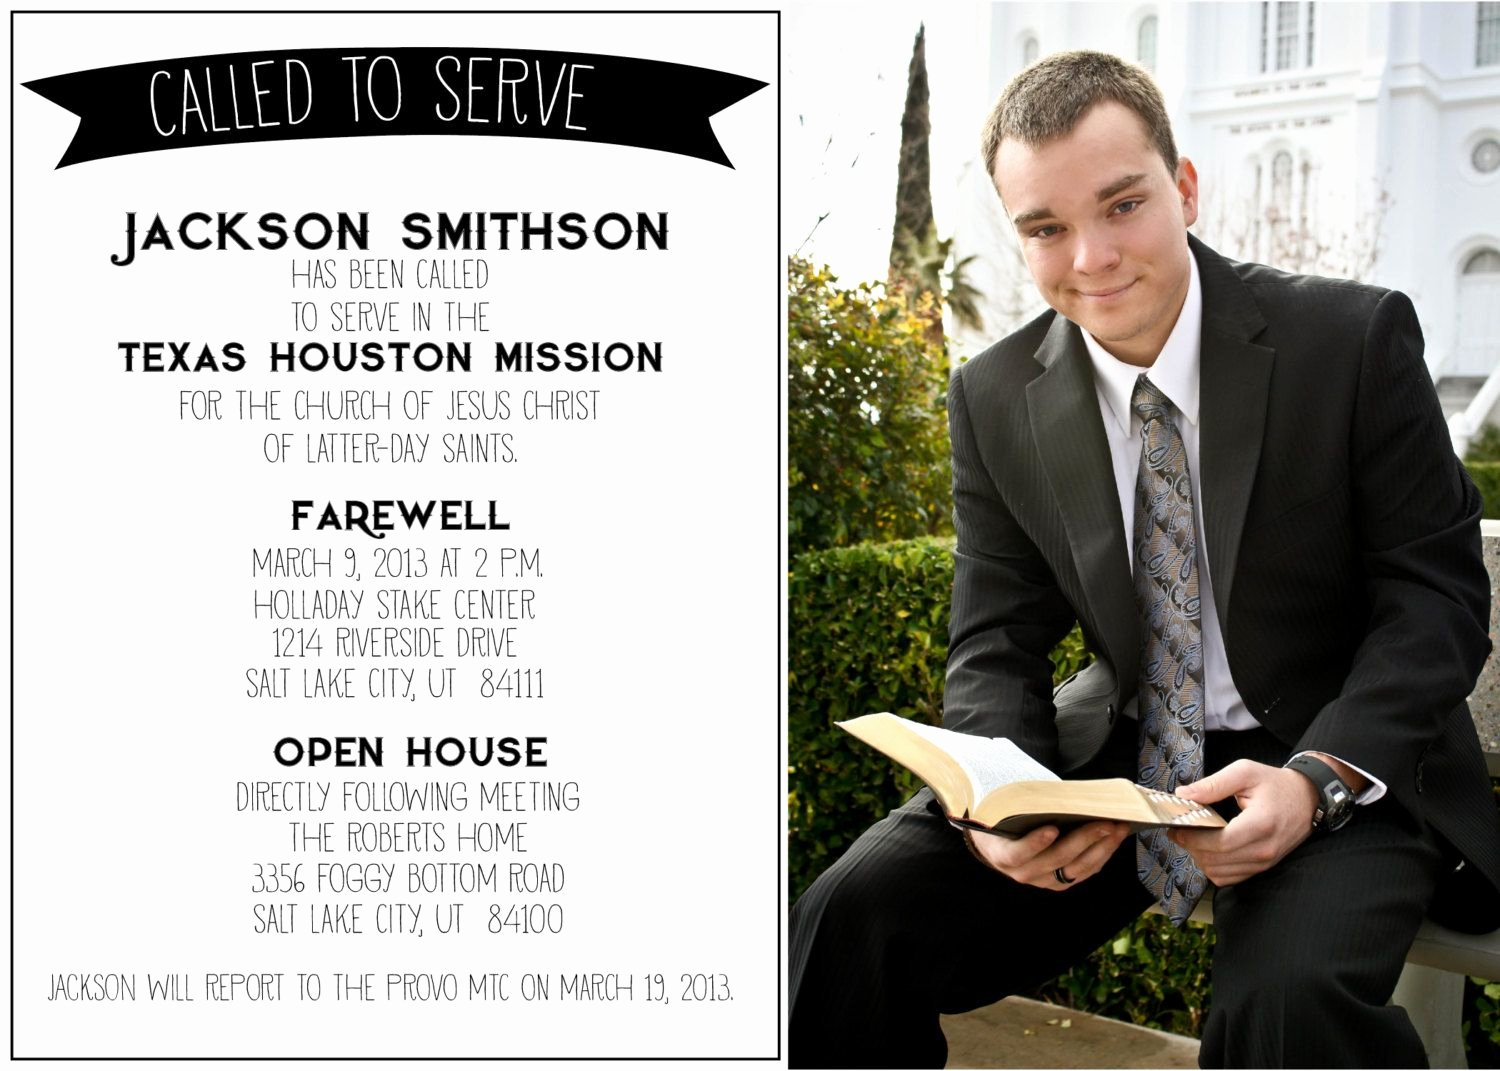 Lds Missionary Tag Template New Called to Serve Missionary Farewell Invitation